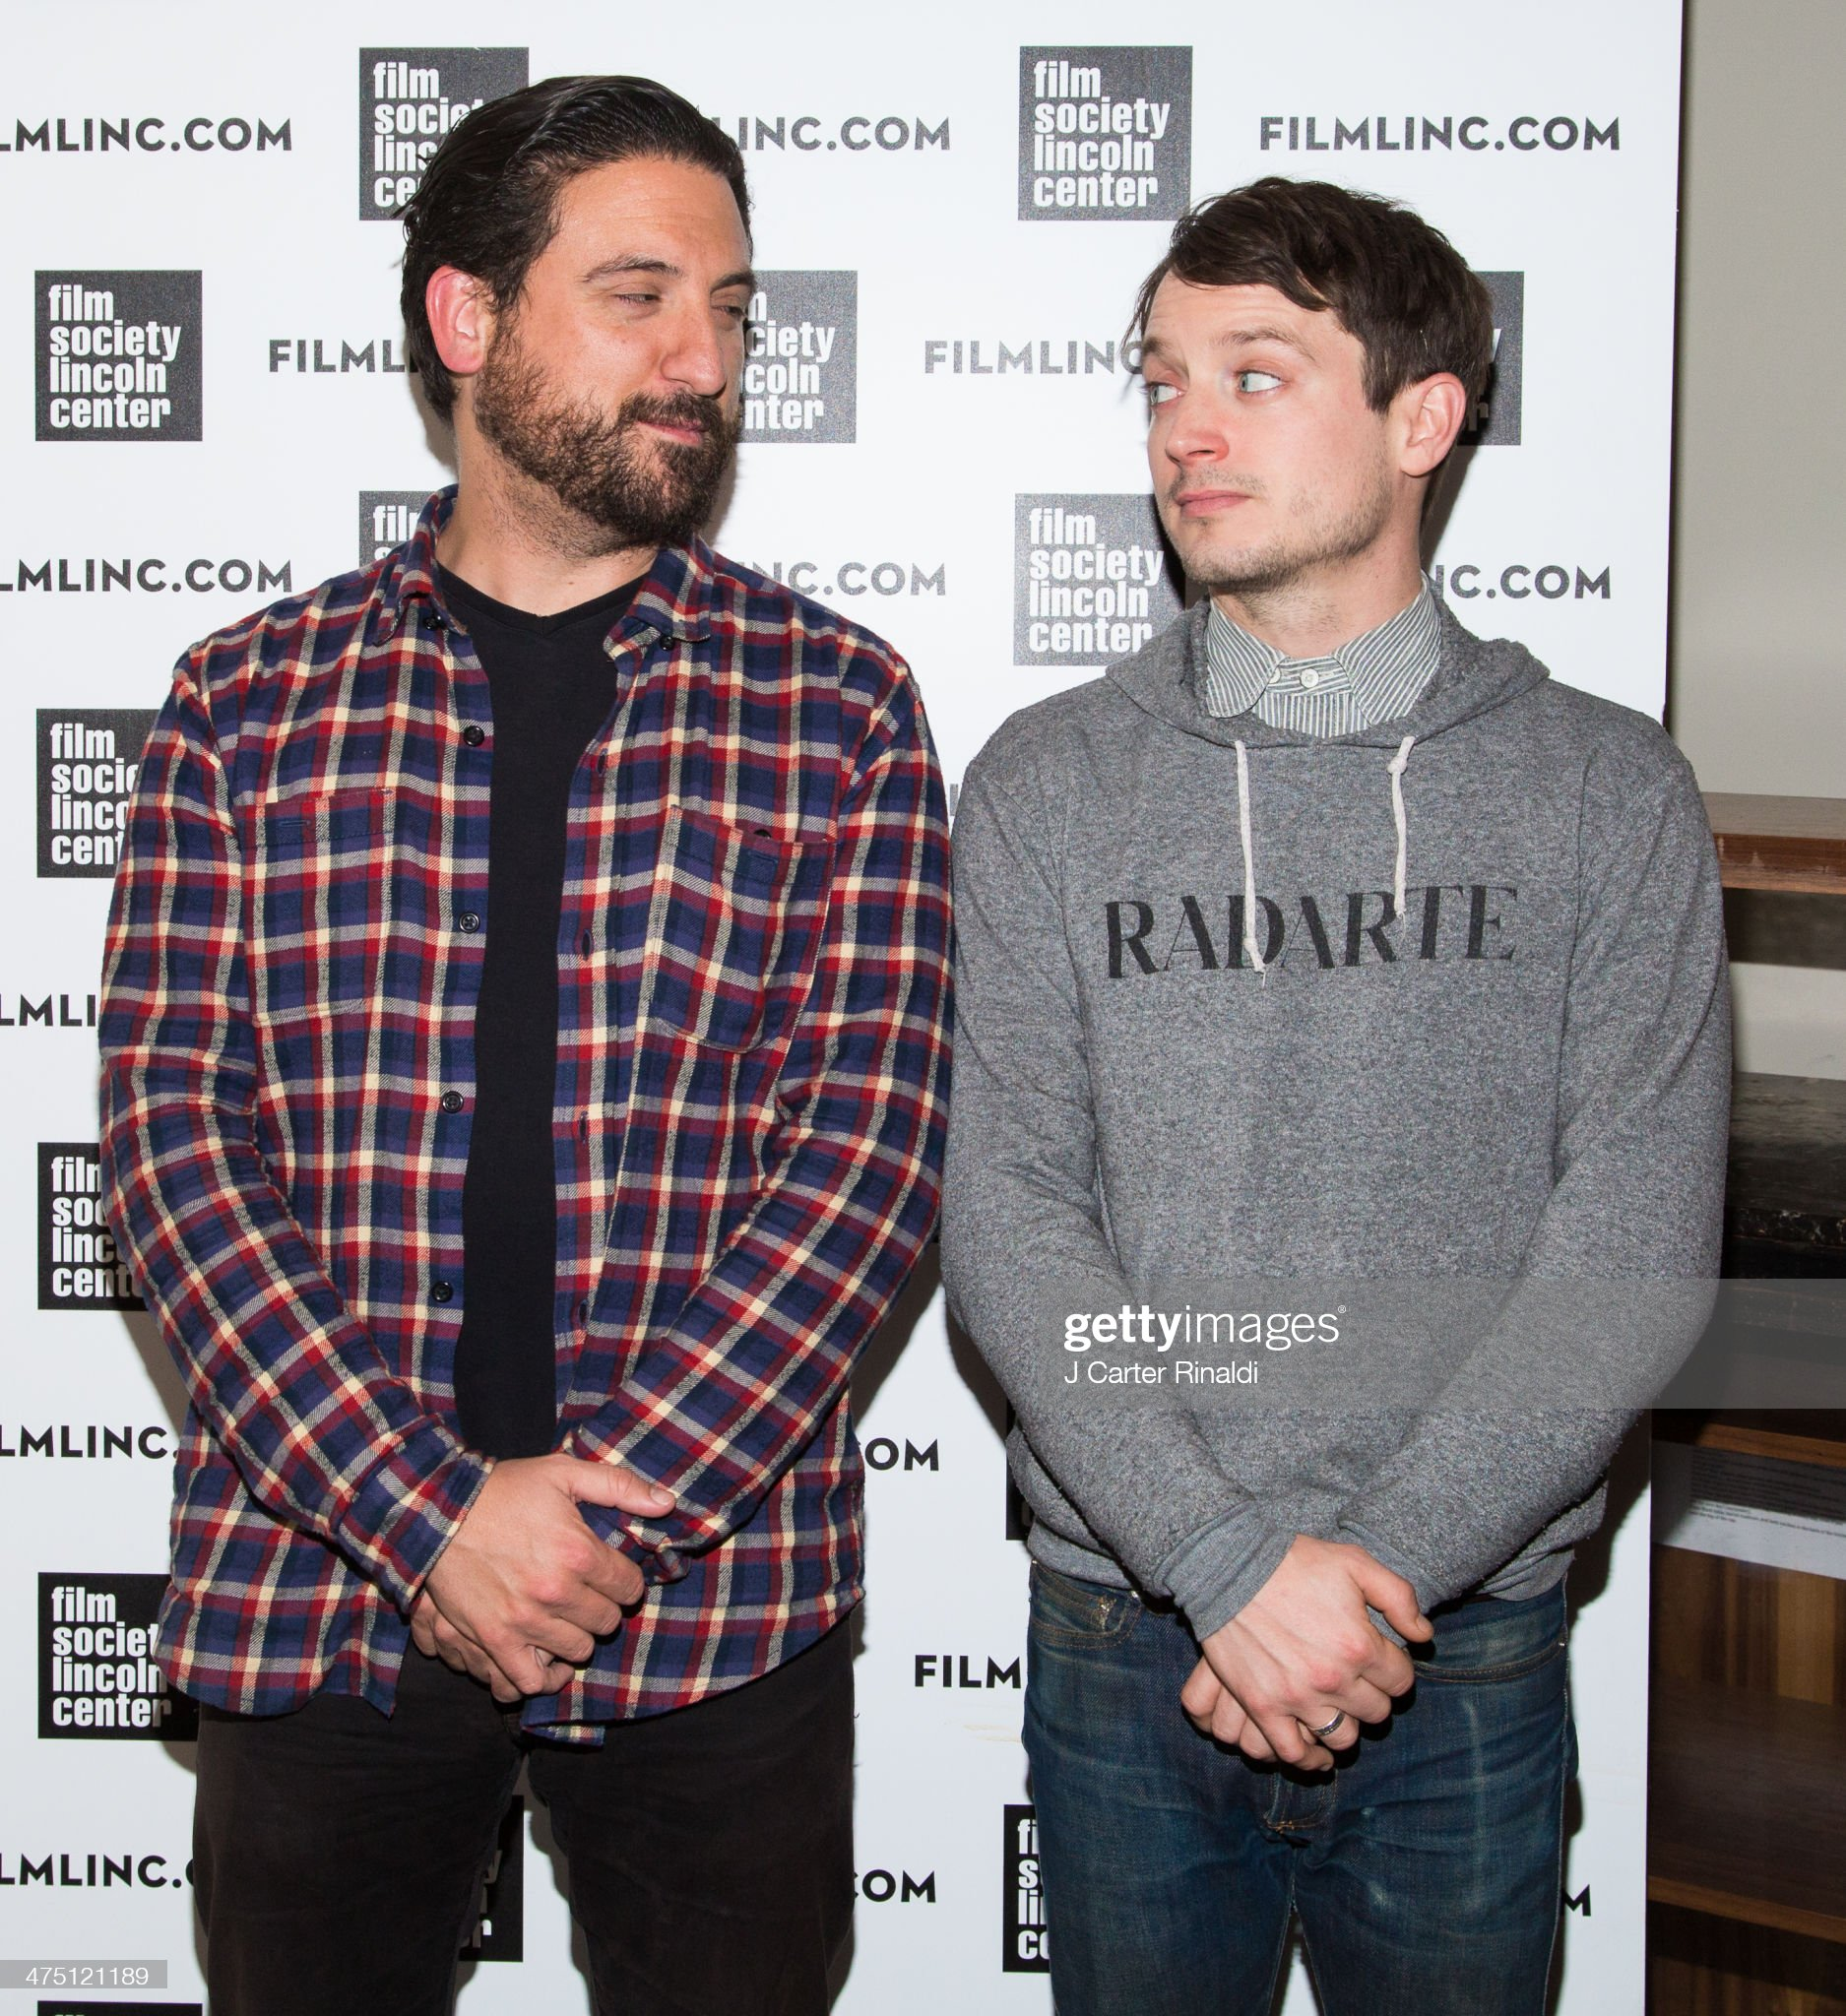 ¿Cuánto mide Eugenio Mira? - Altura Director-eugenio-mira-and-actor-elijah-wood-attend-the-film-society-picture-id475121189?s=2048x2048